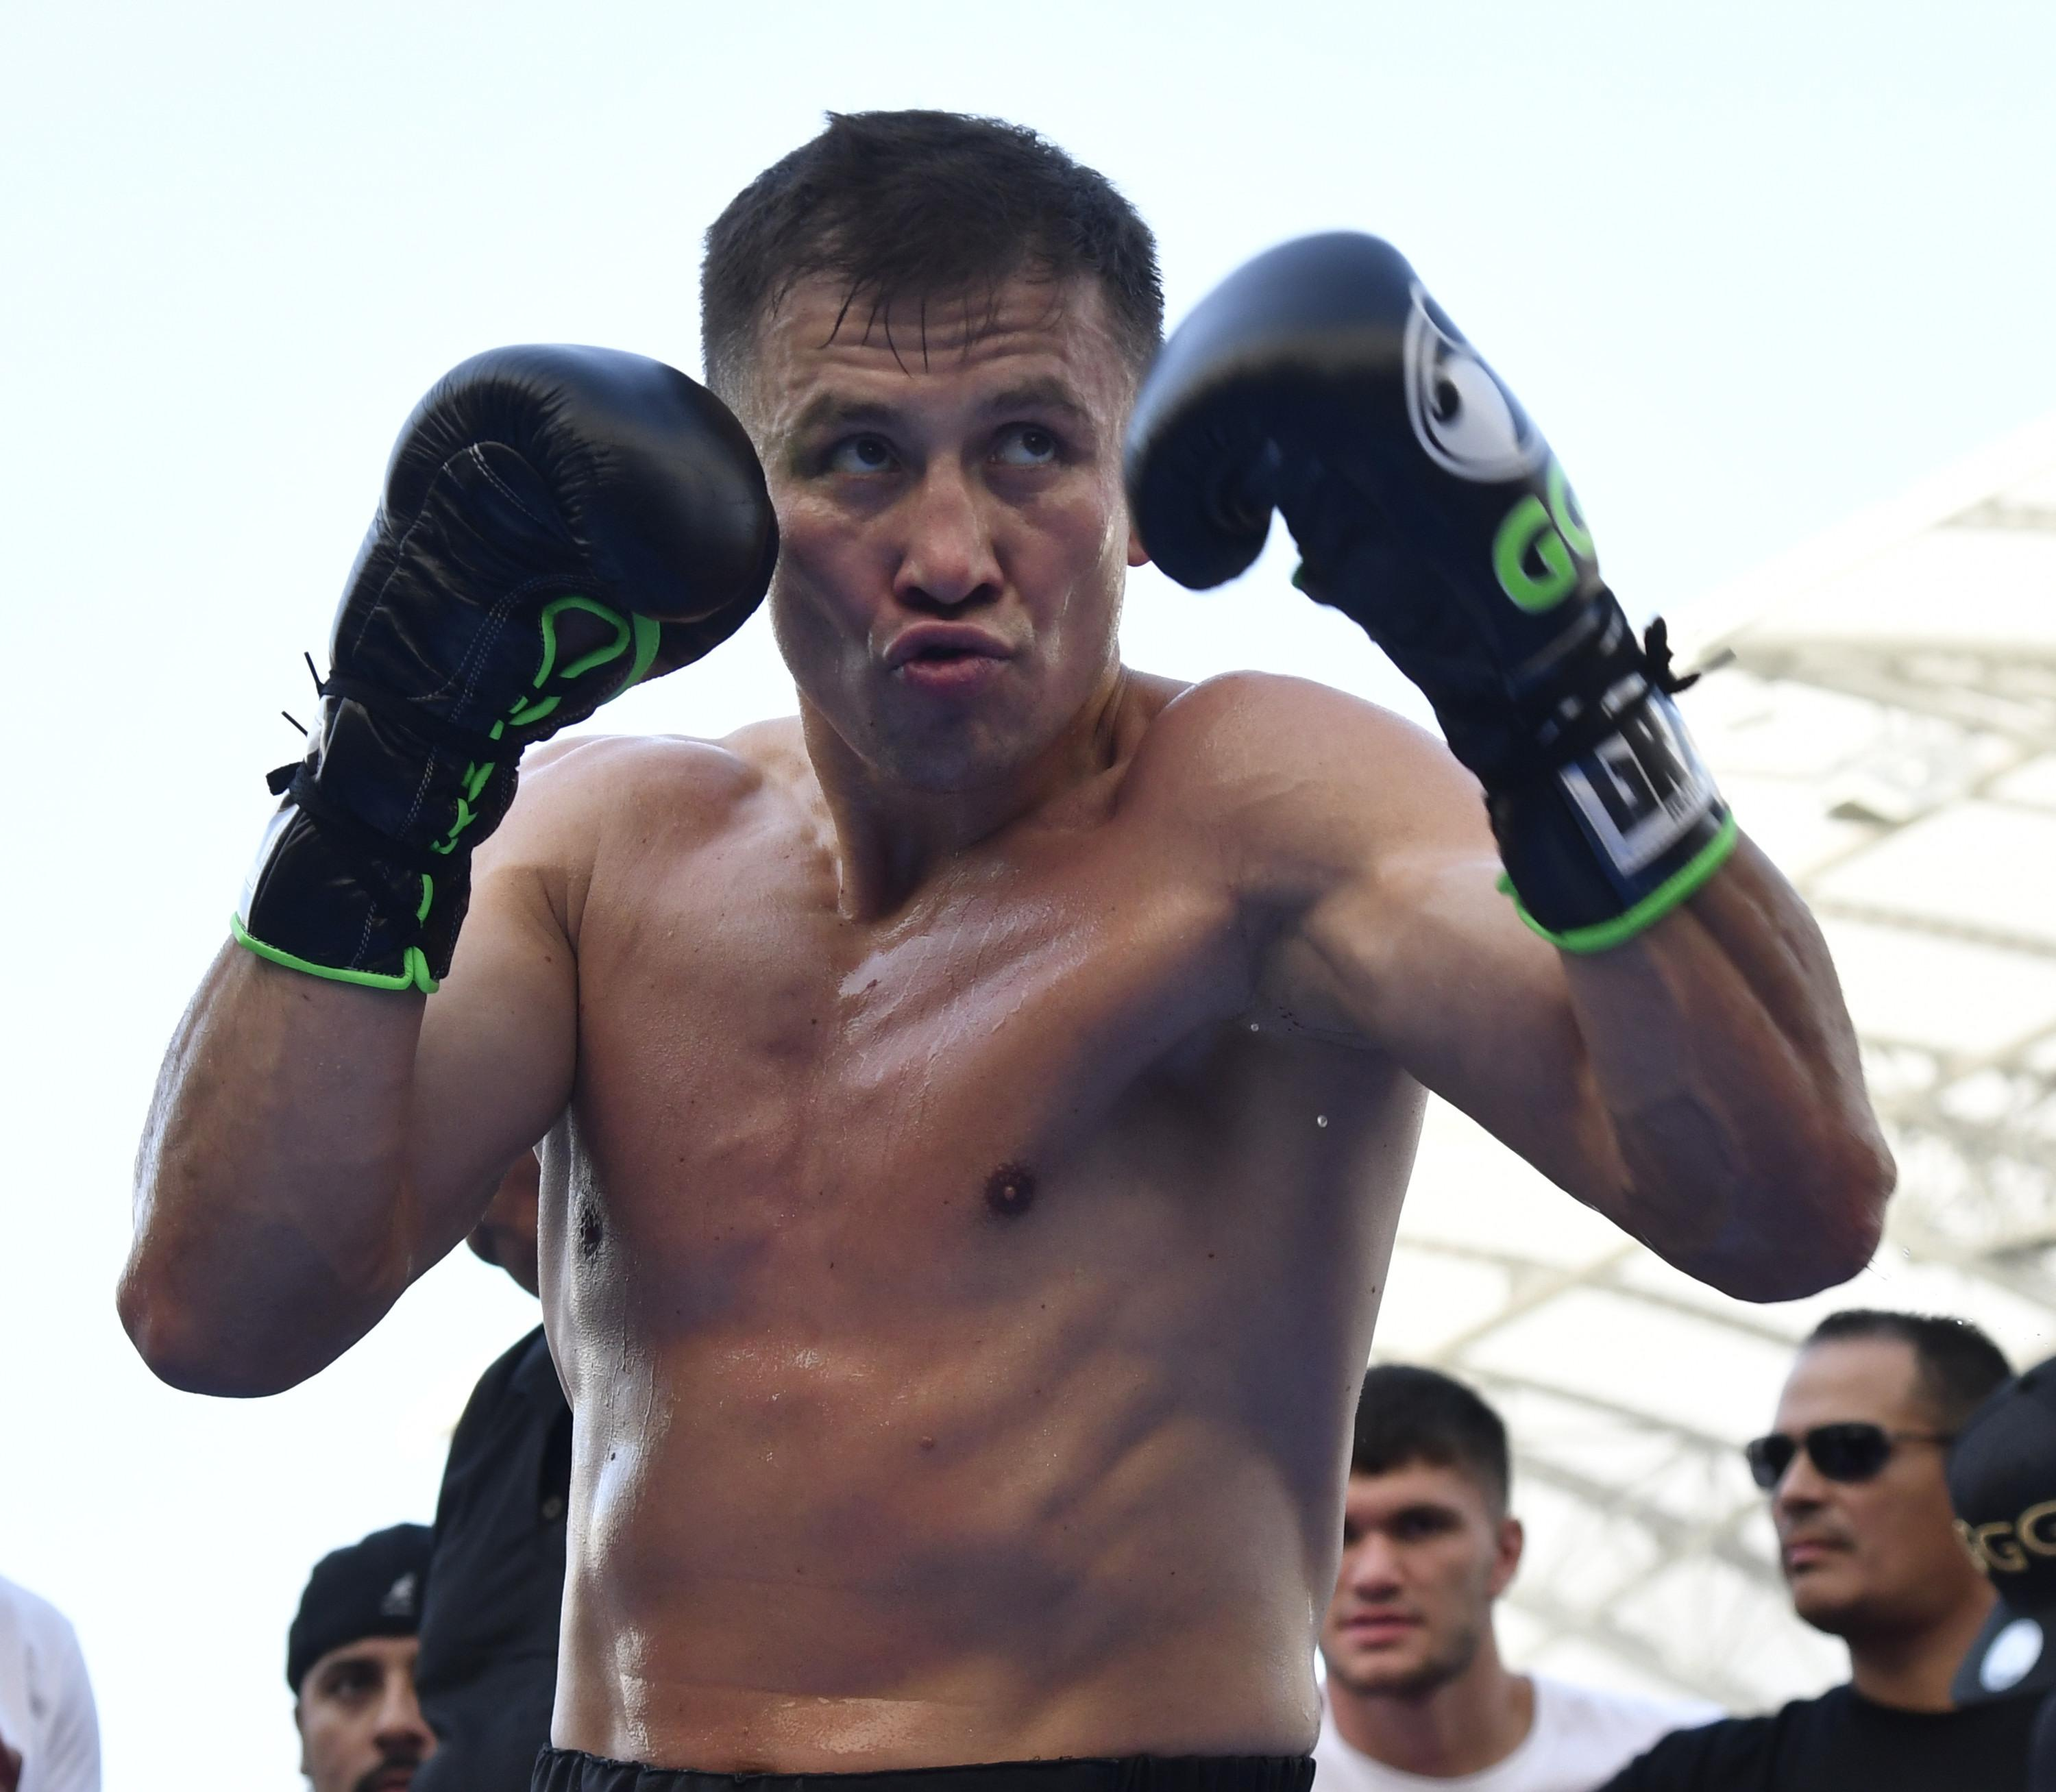 Gennady Golovkin blasted Saul Alvarez and his fans as 'fake'